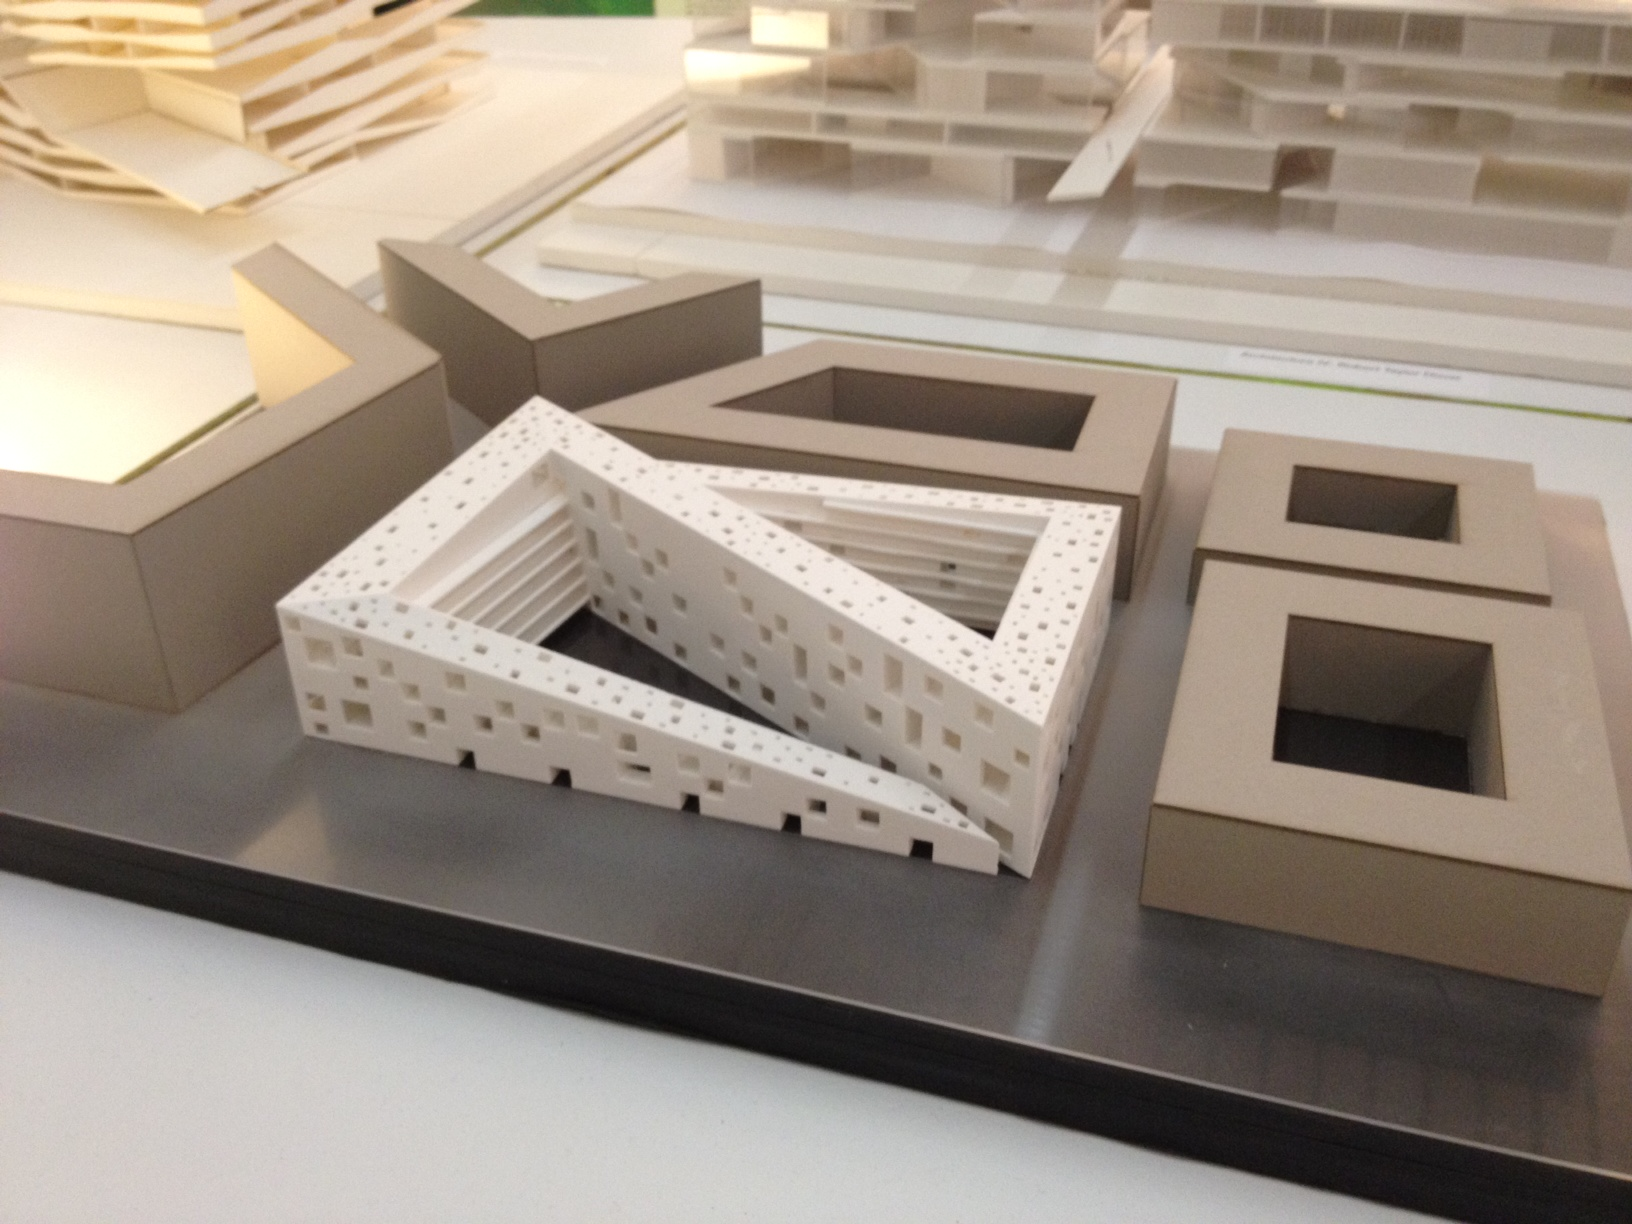 harvard graduate school of design | bhamarchitect's blog